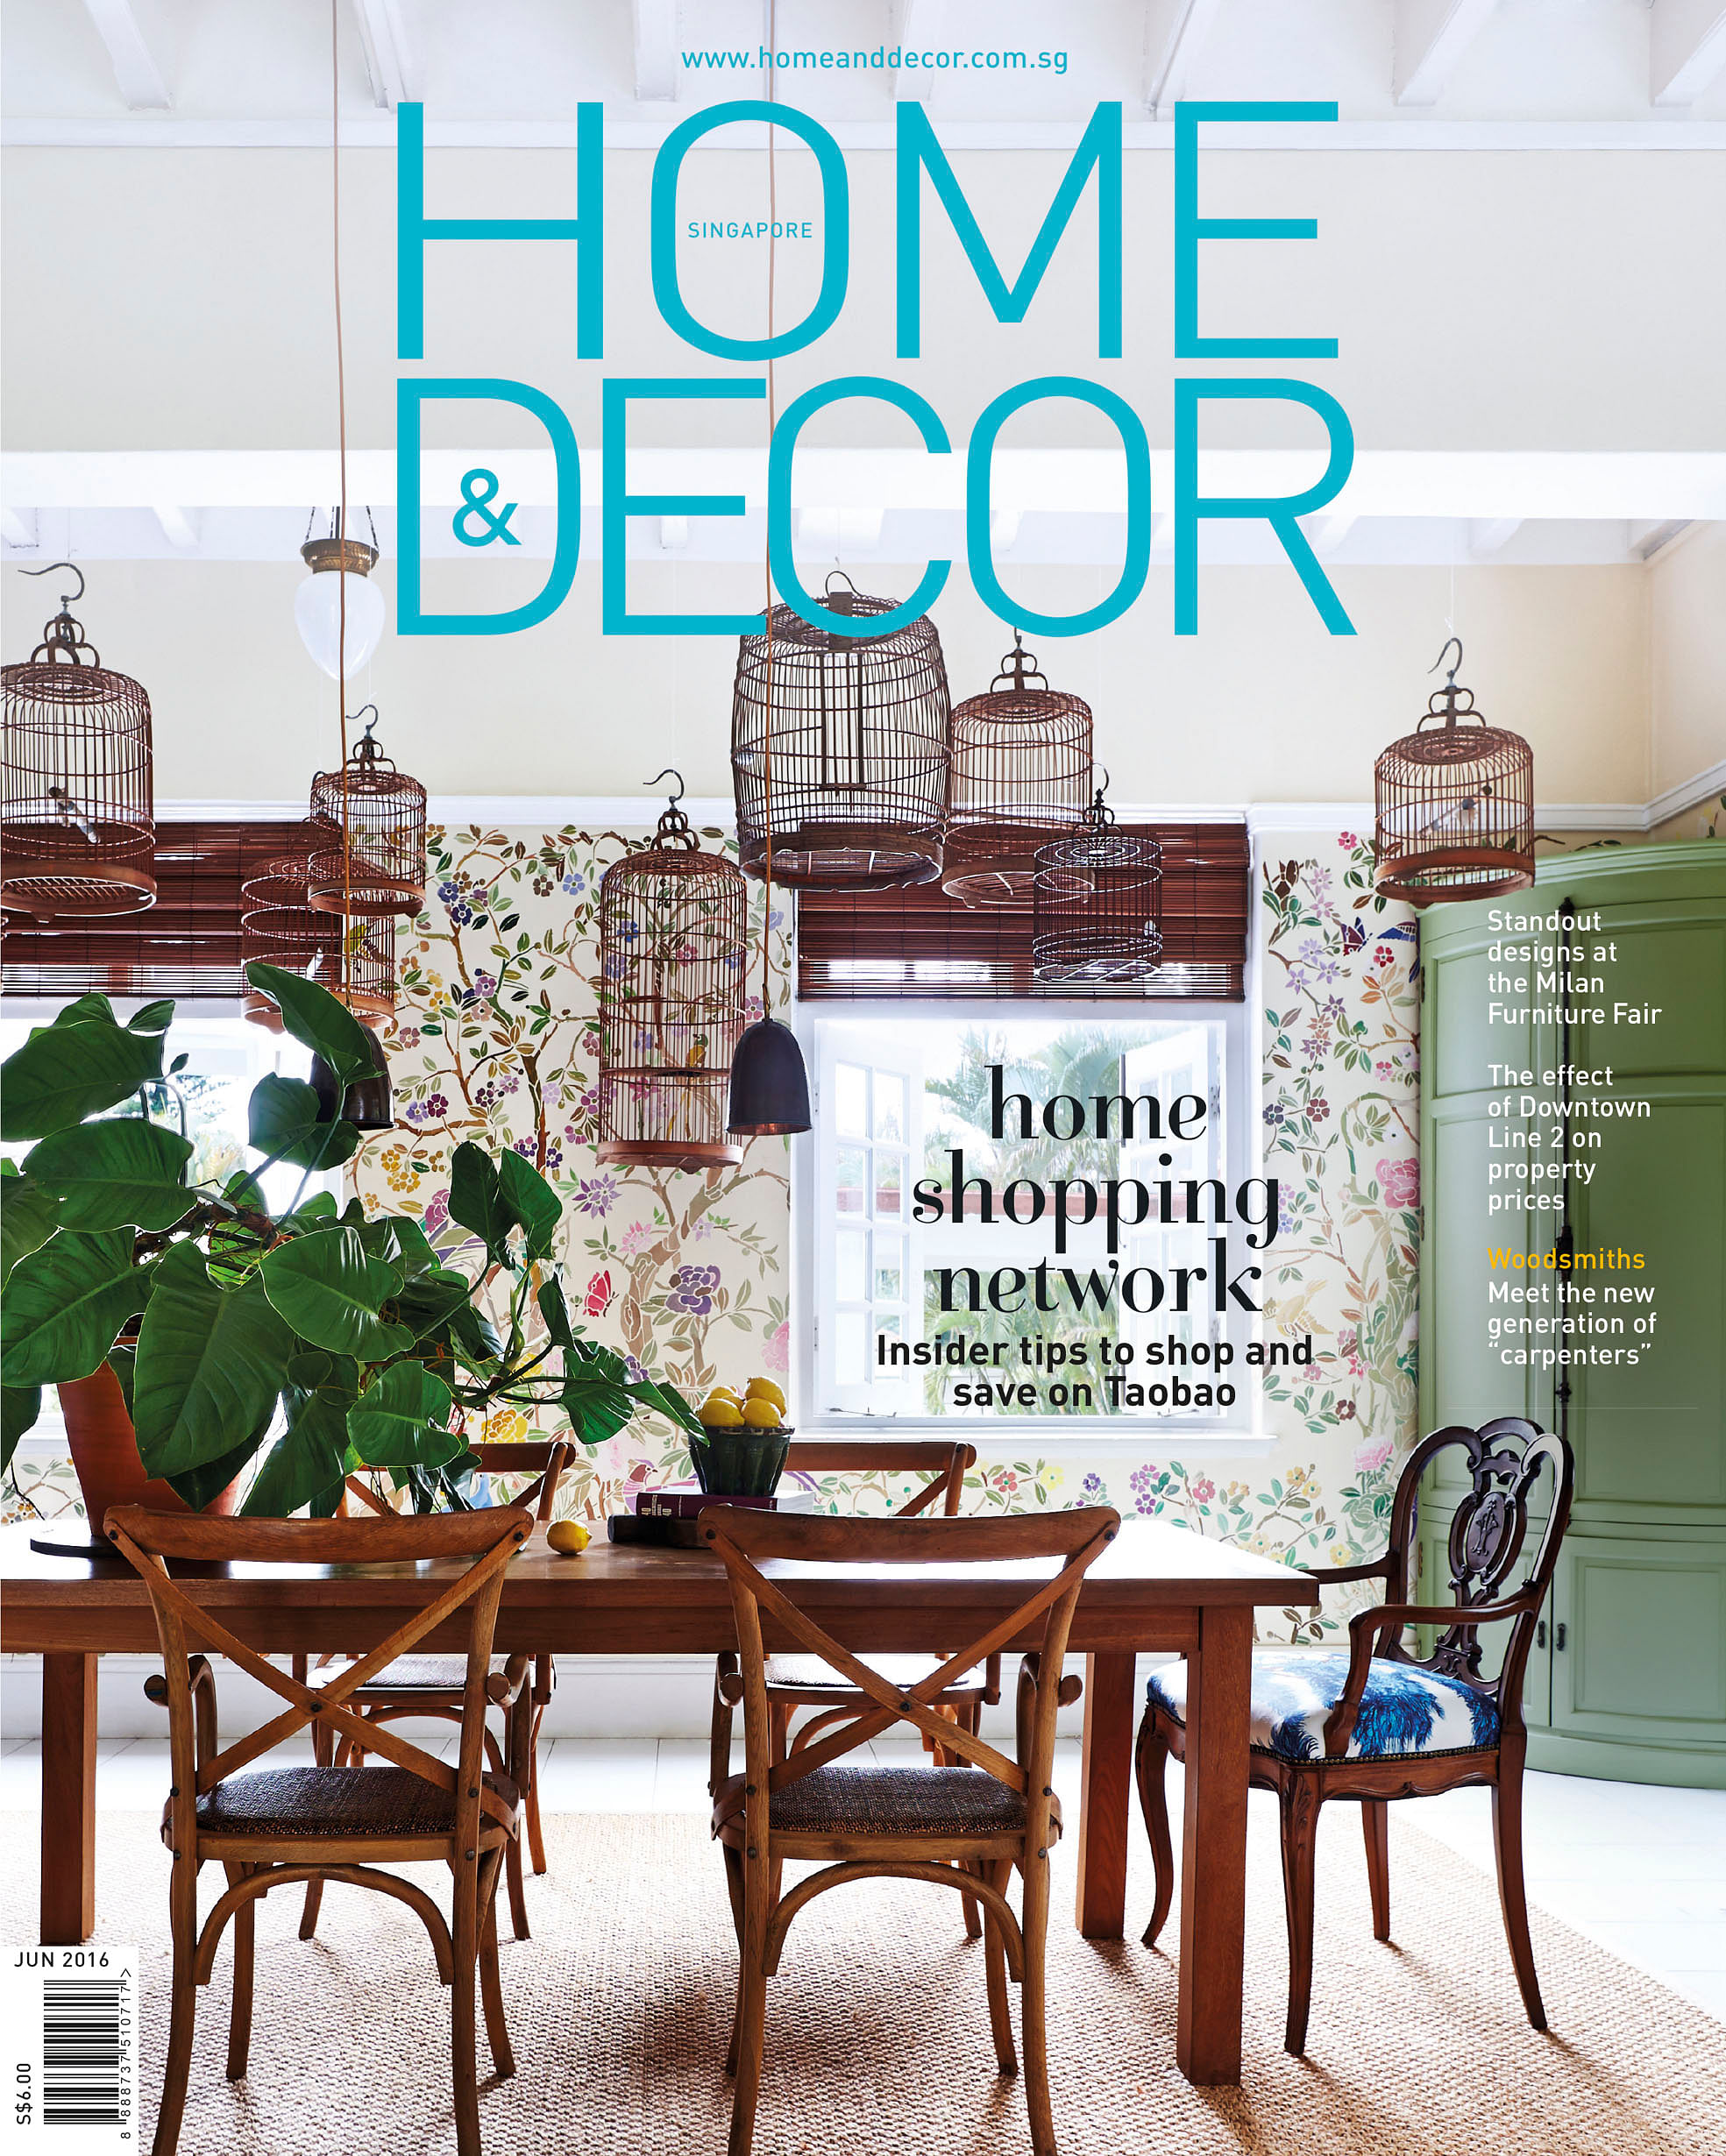 Second Home Decorating Ideas: Second Chance, Home & Design News & Top Stories